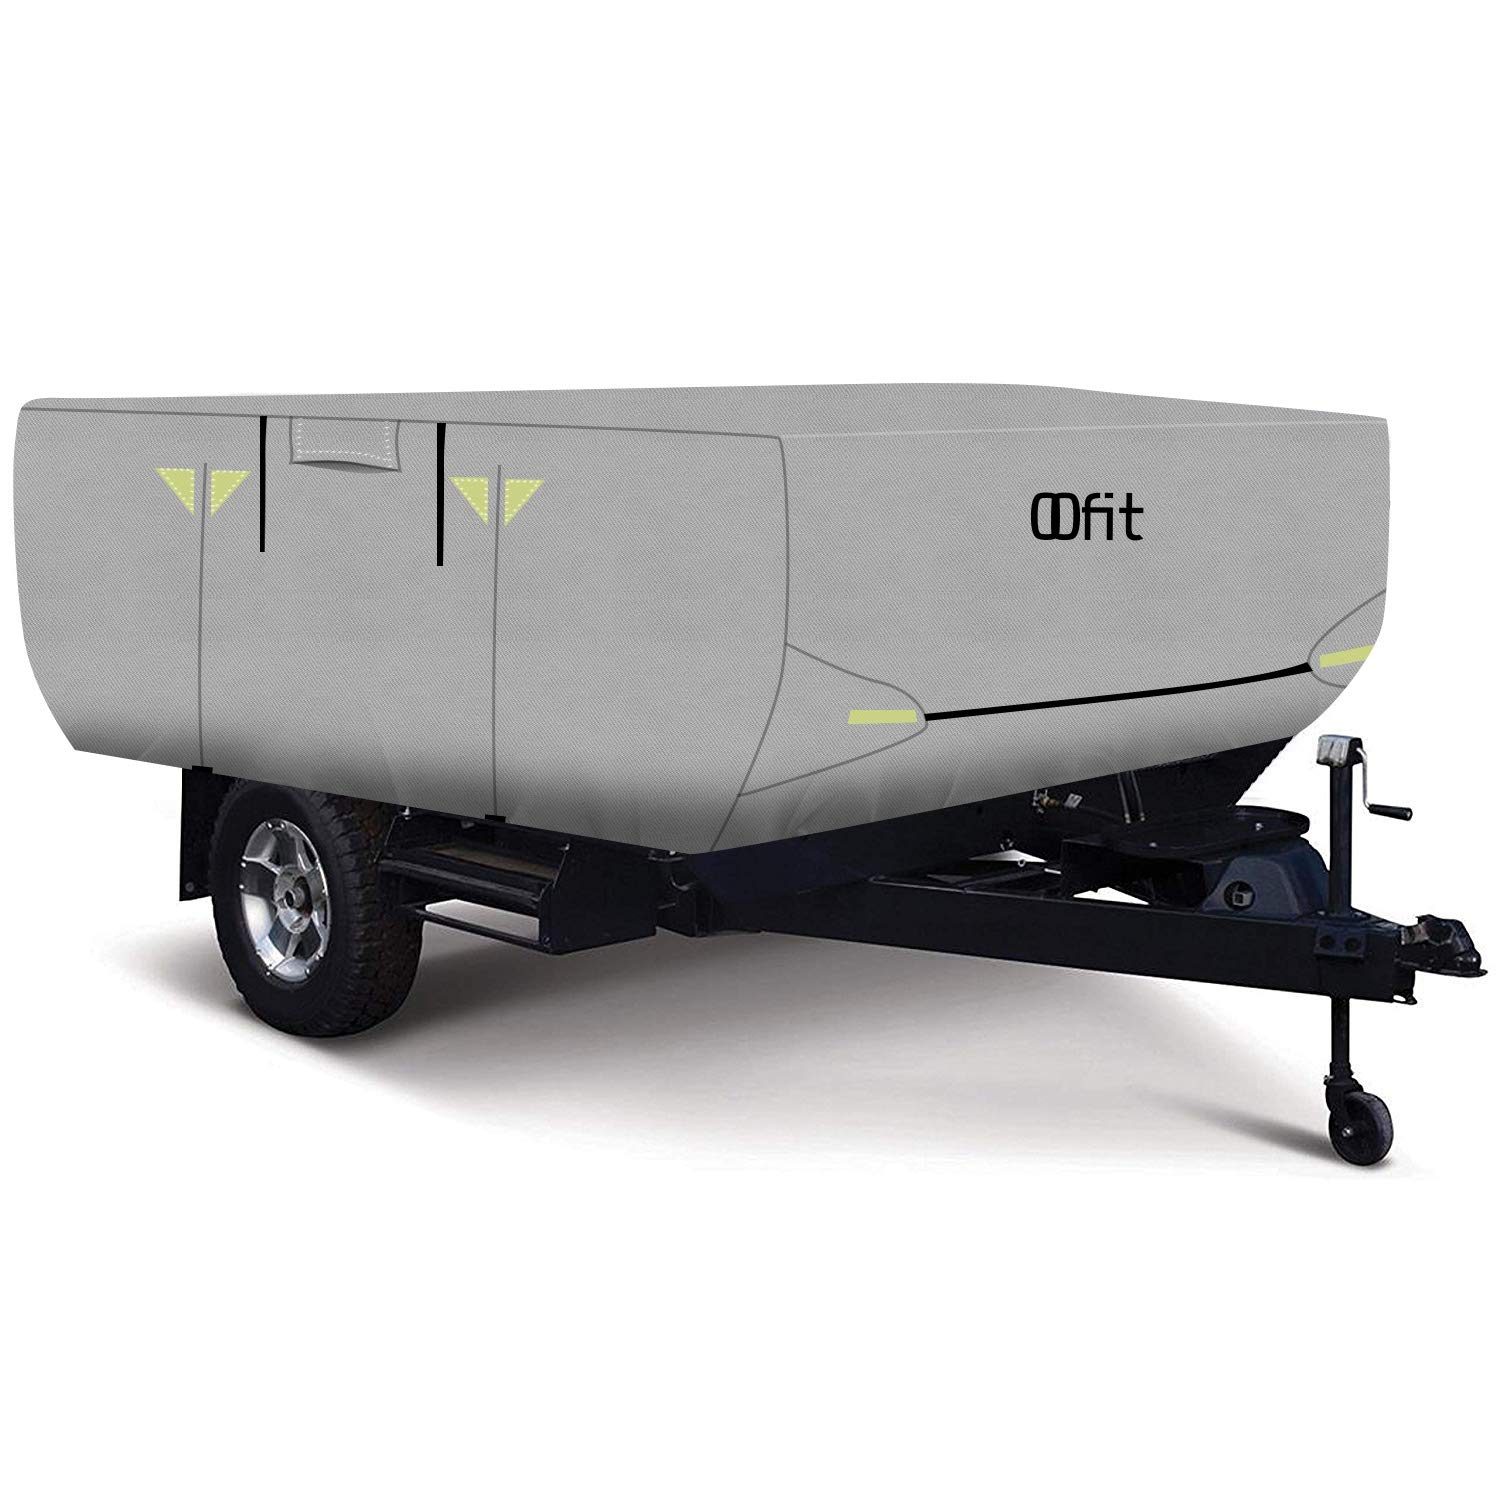 OOFIT 4 Layers Pop-up Camper Cover 12' – 14' Rip-Stop Anti-UV Folding Camper Trailer RV Cover with Adhesive Repair Patch by OOFIT (Image #1)